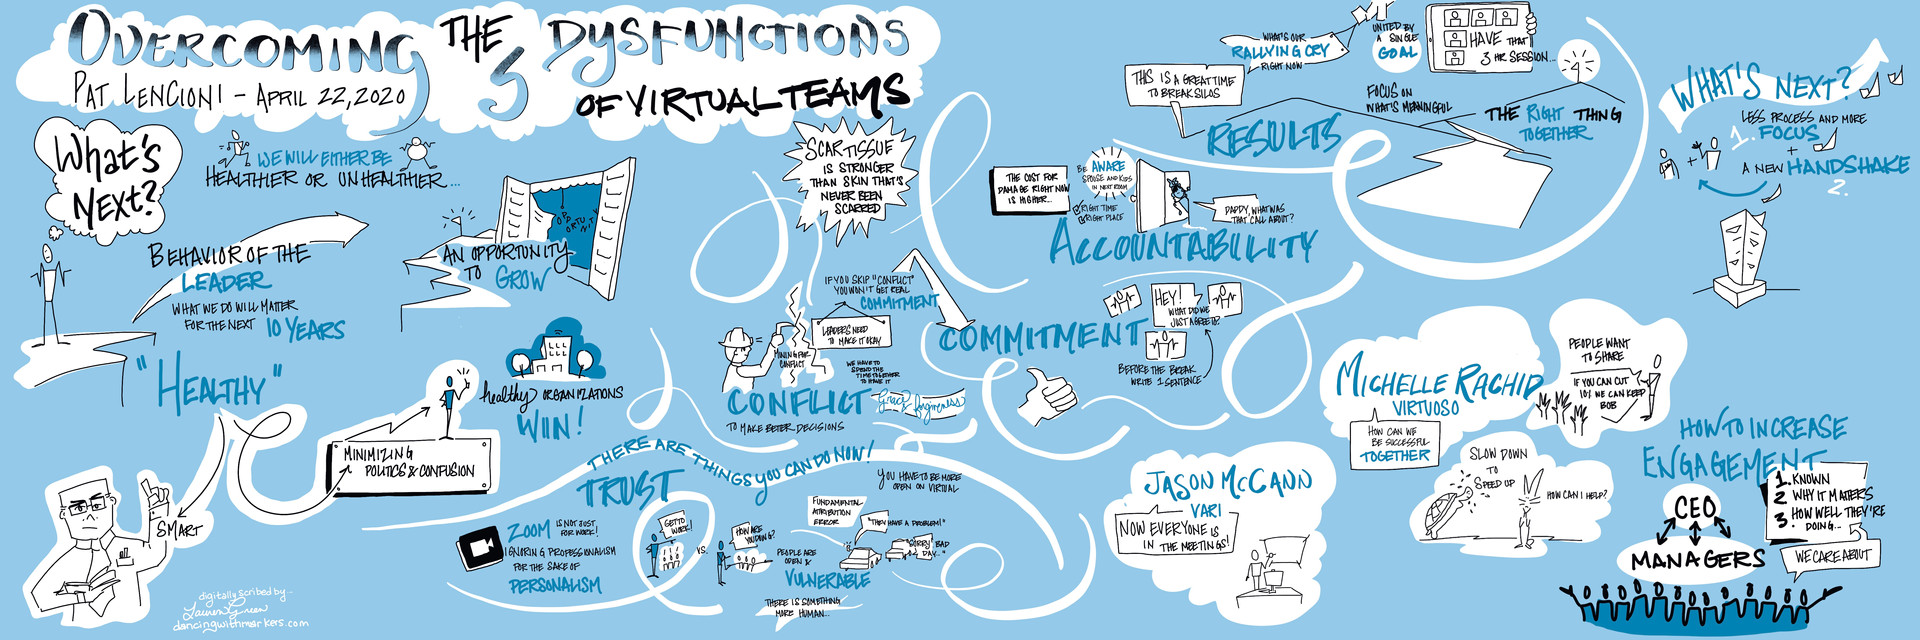 Overcoming the 5 Dysfunctions of Virtual Teams